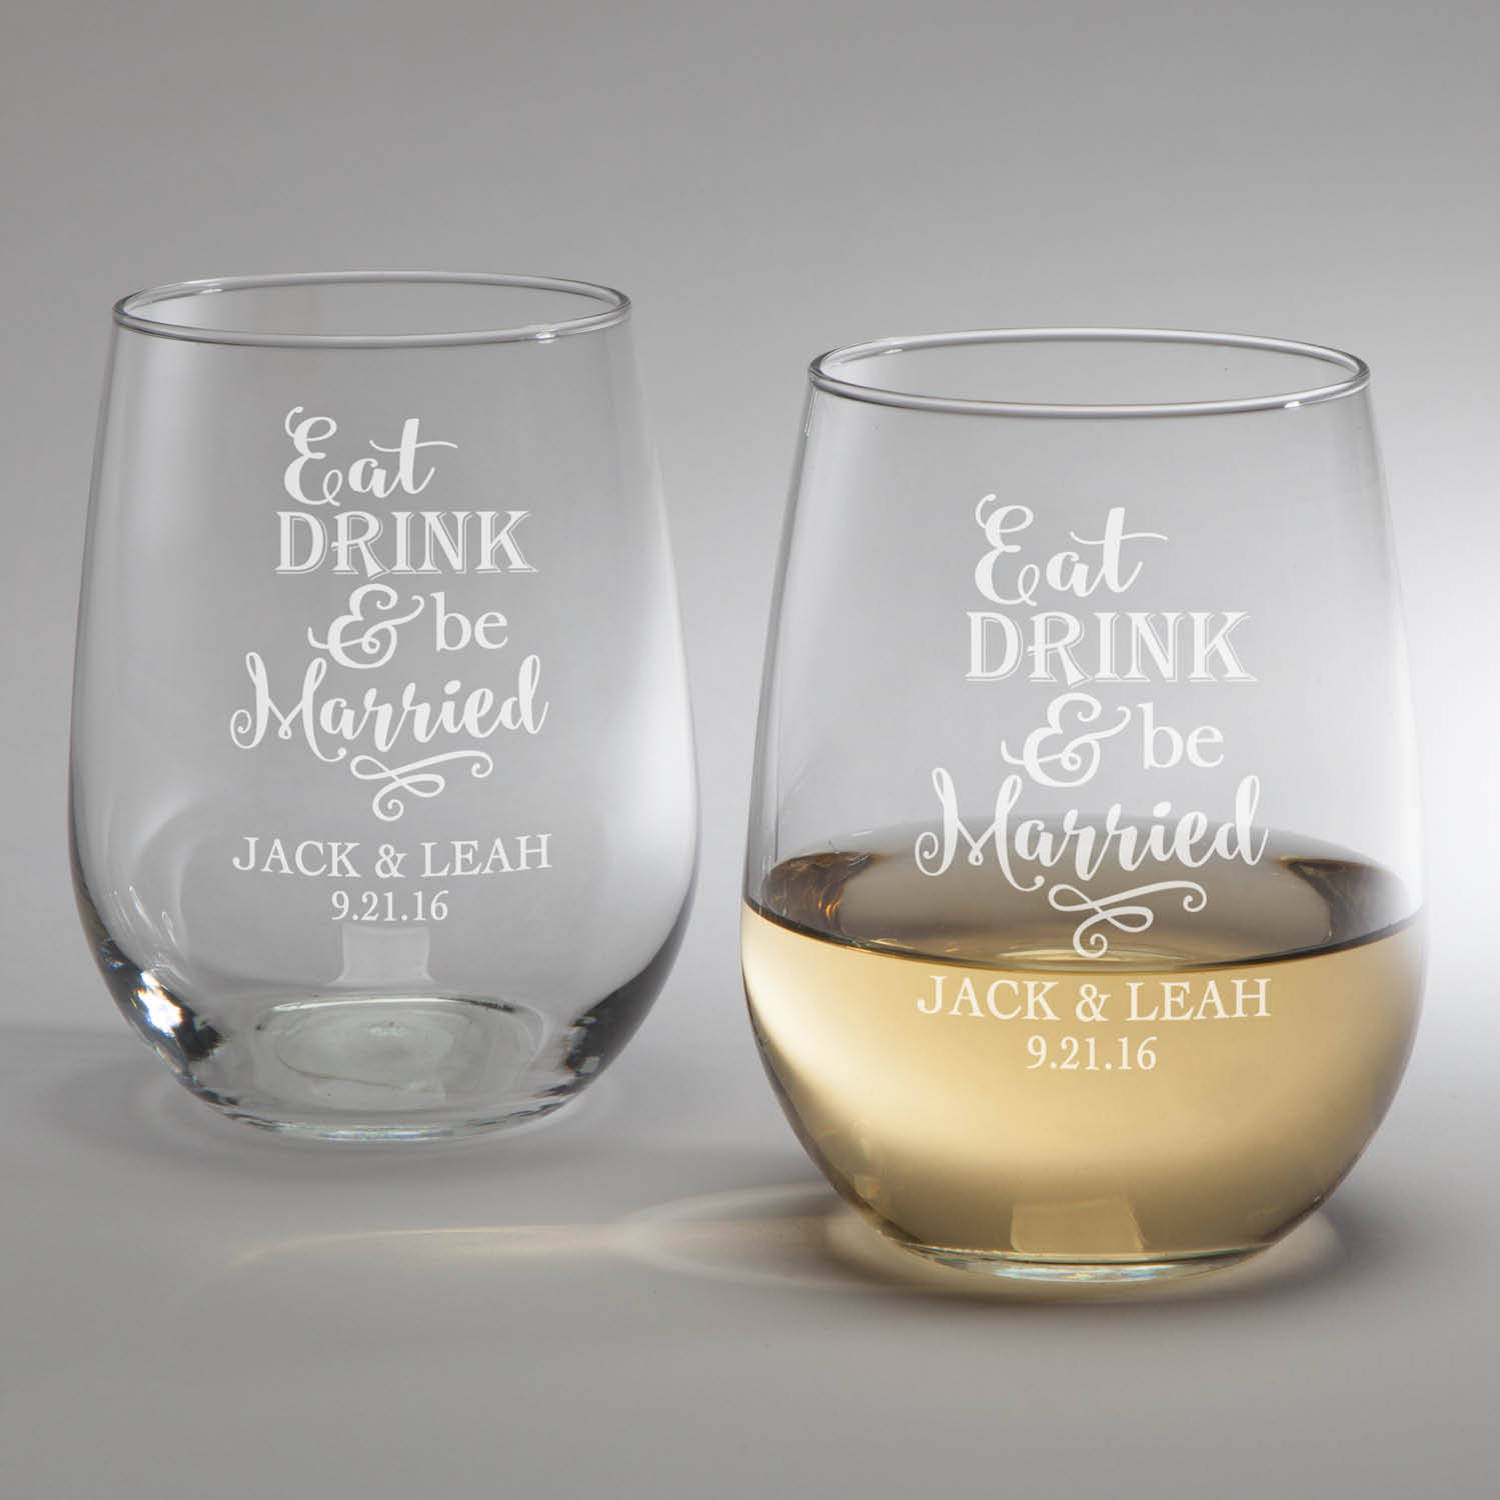 Eat, Drink & Be Married Personalized Stemless Wine Glass Set